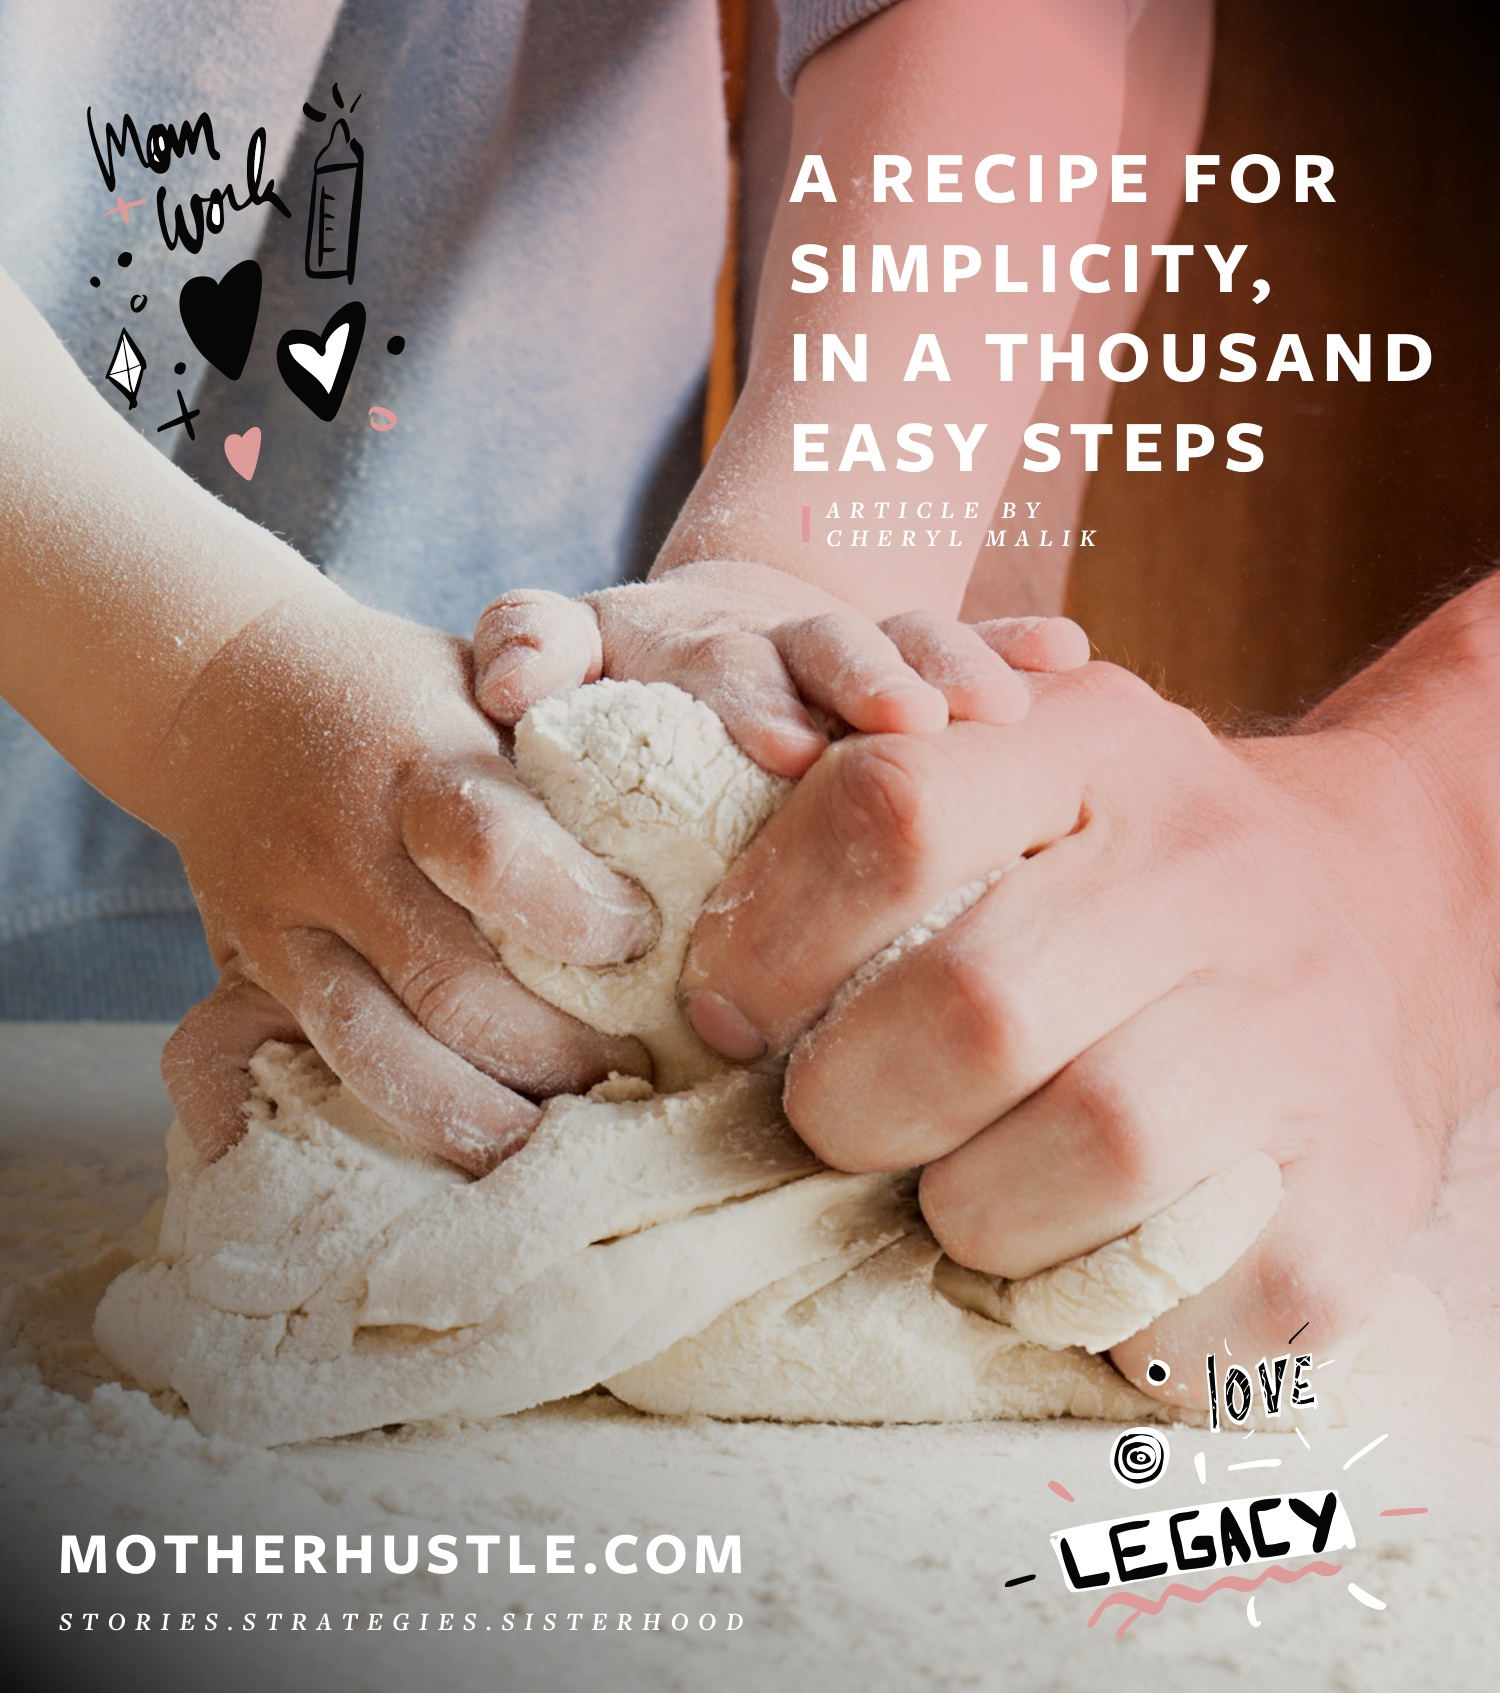 A Recipe for Simplicity, In A Thousand Easy Steps - Cheryl Malik MotherHustle